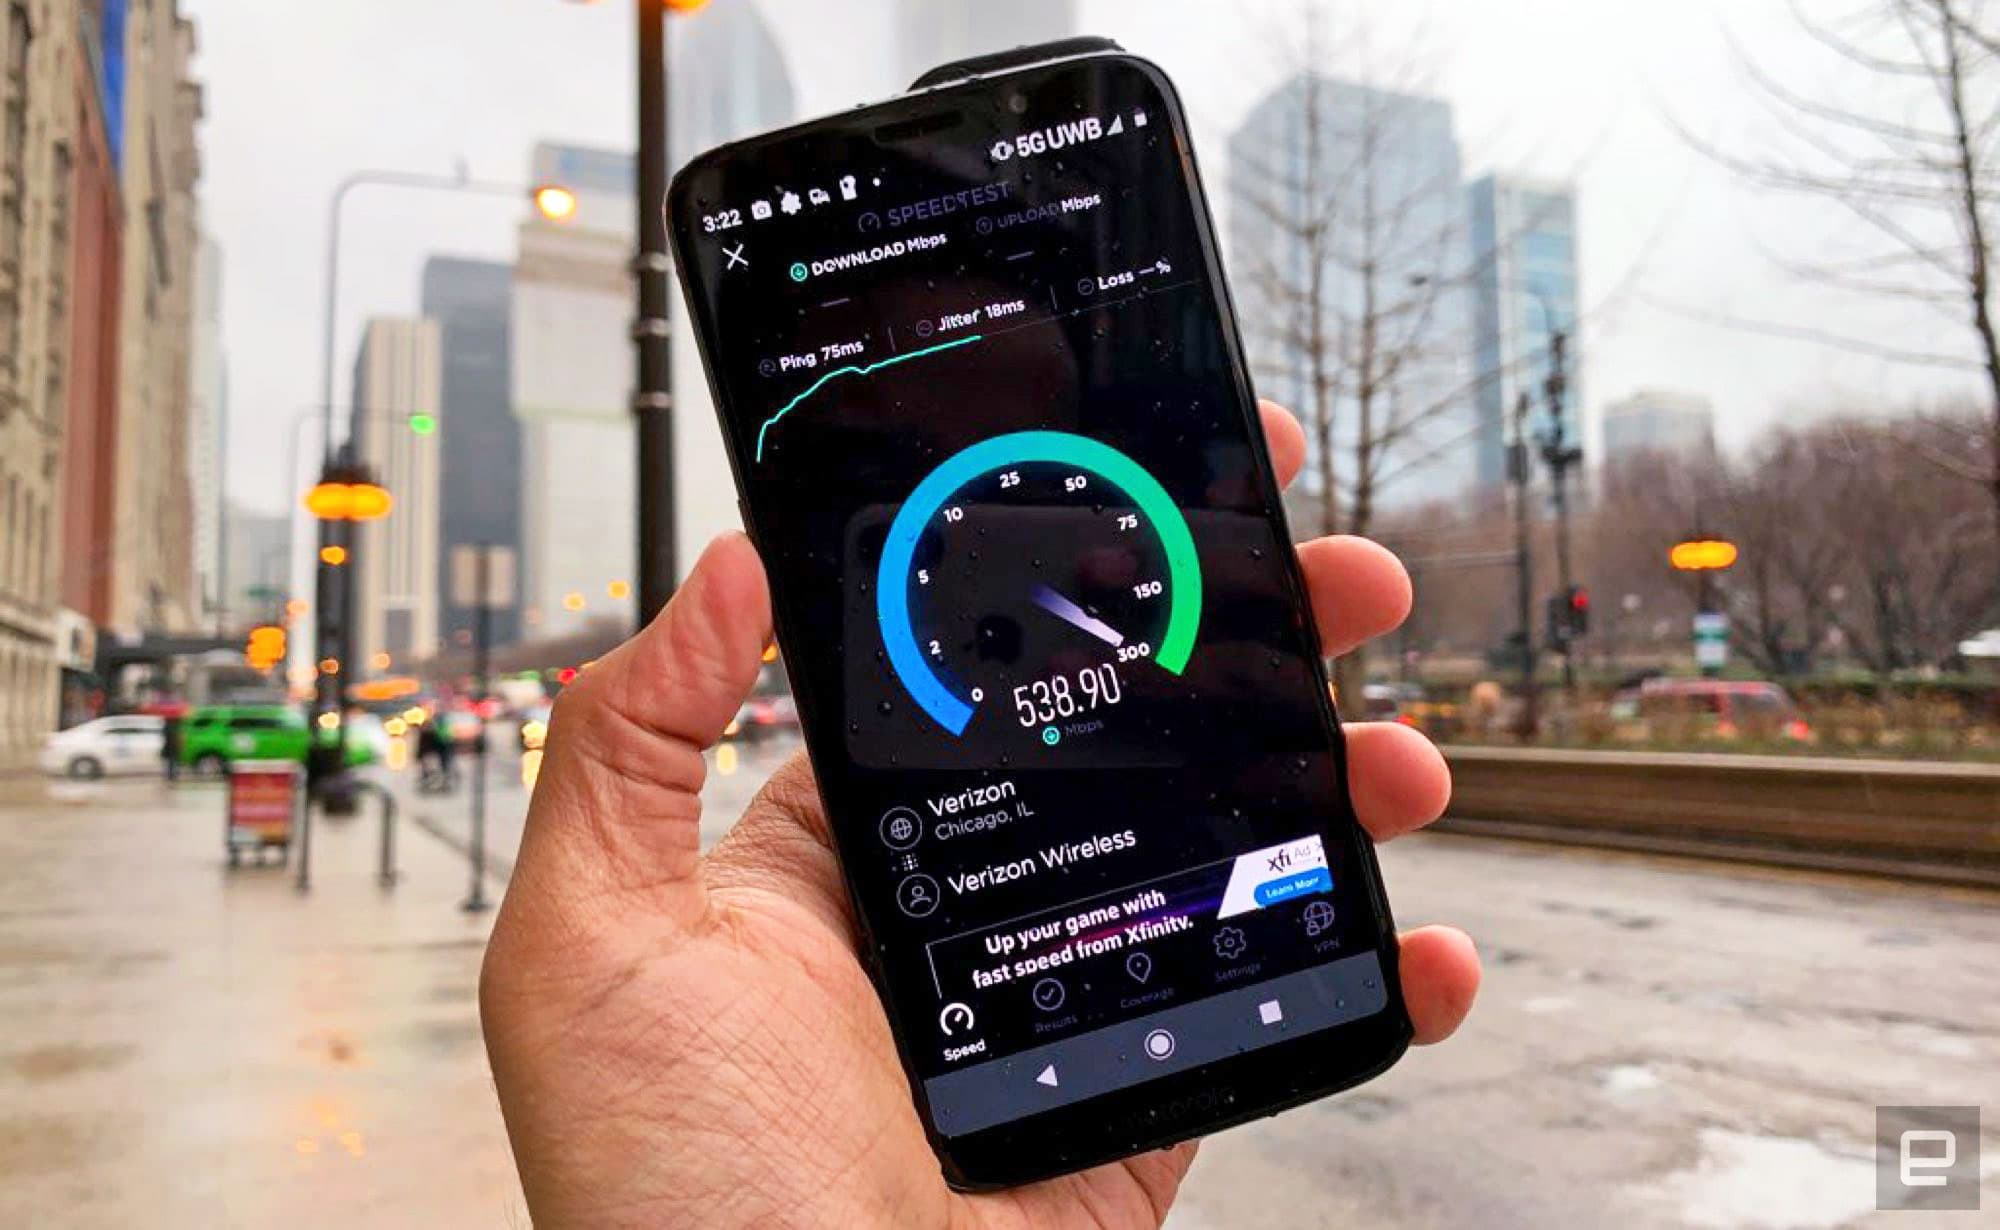 Verizon's 5G network is live and fast, if you can find it